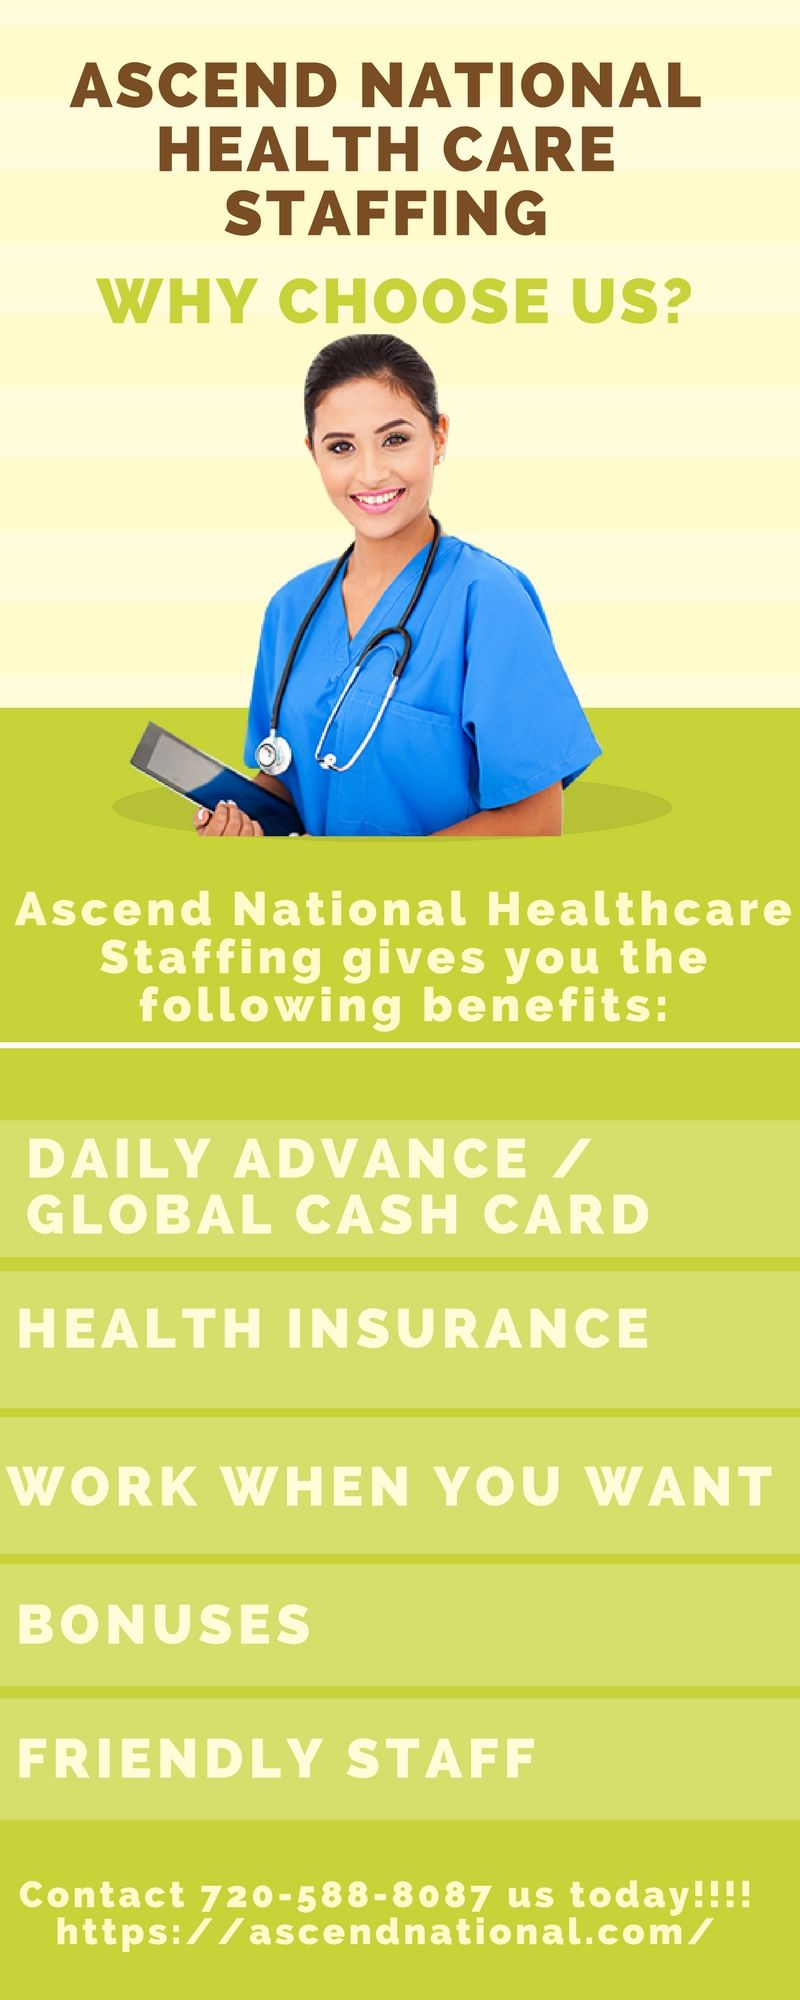 Ascend National Healthcare Staffing gives you the